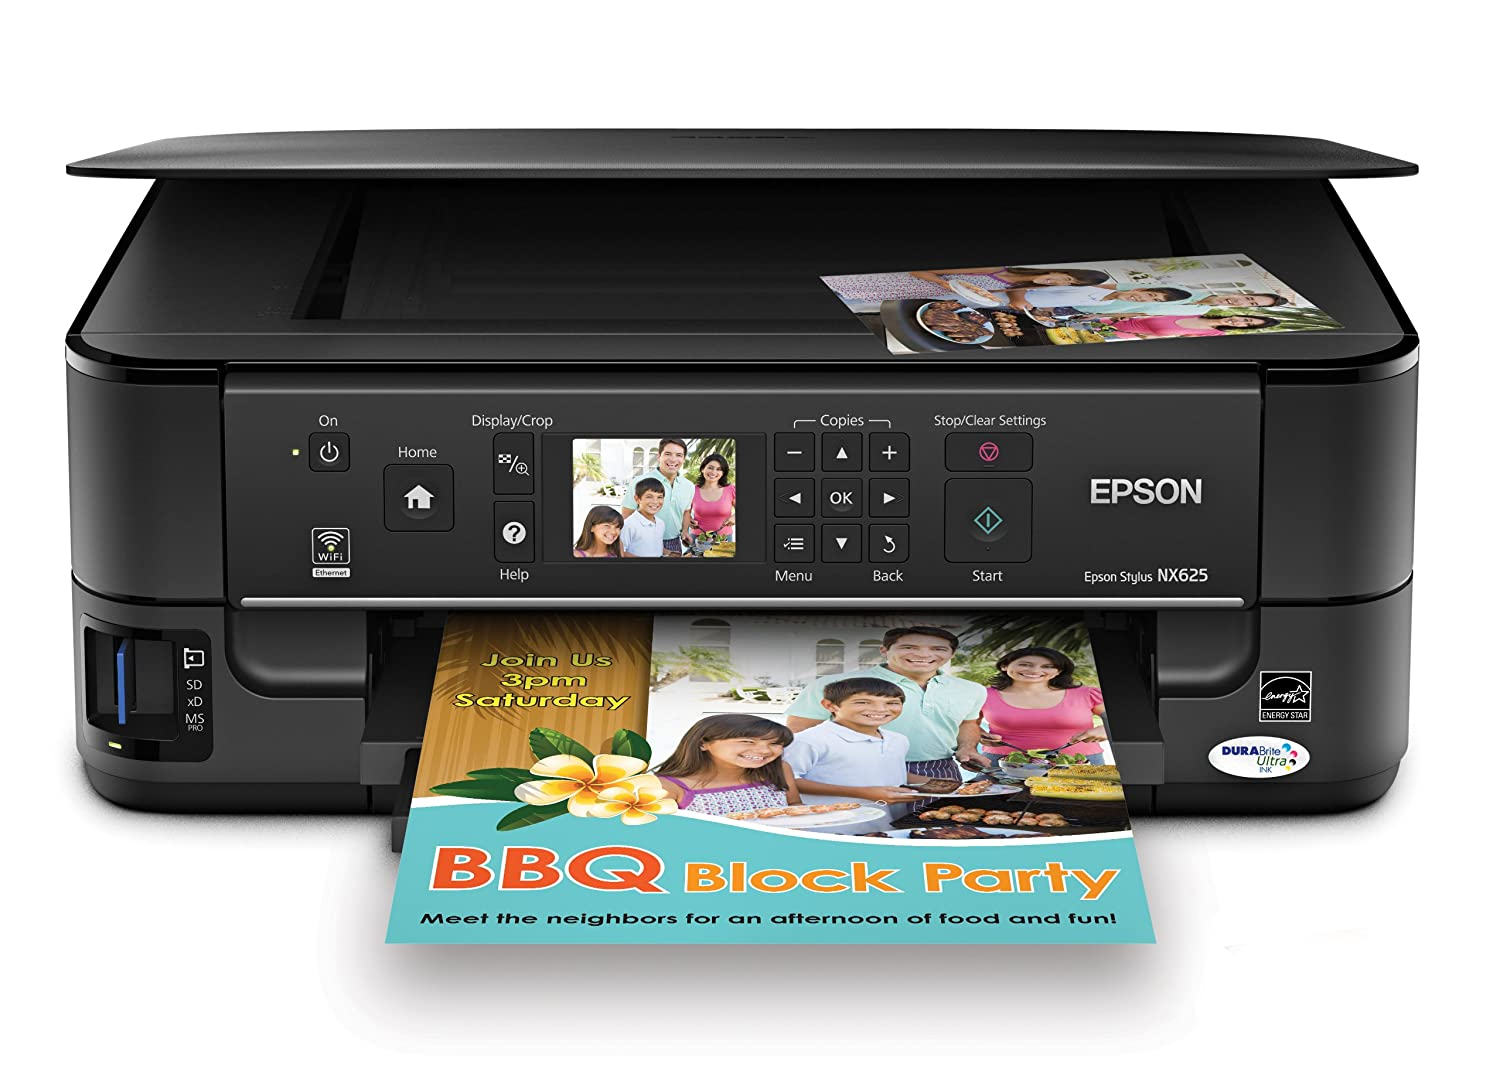 Epson Stylus NX625 Printer Mac